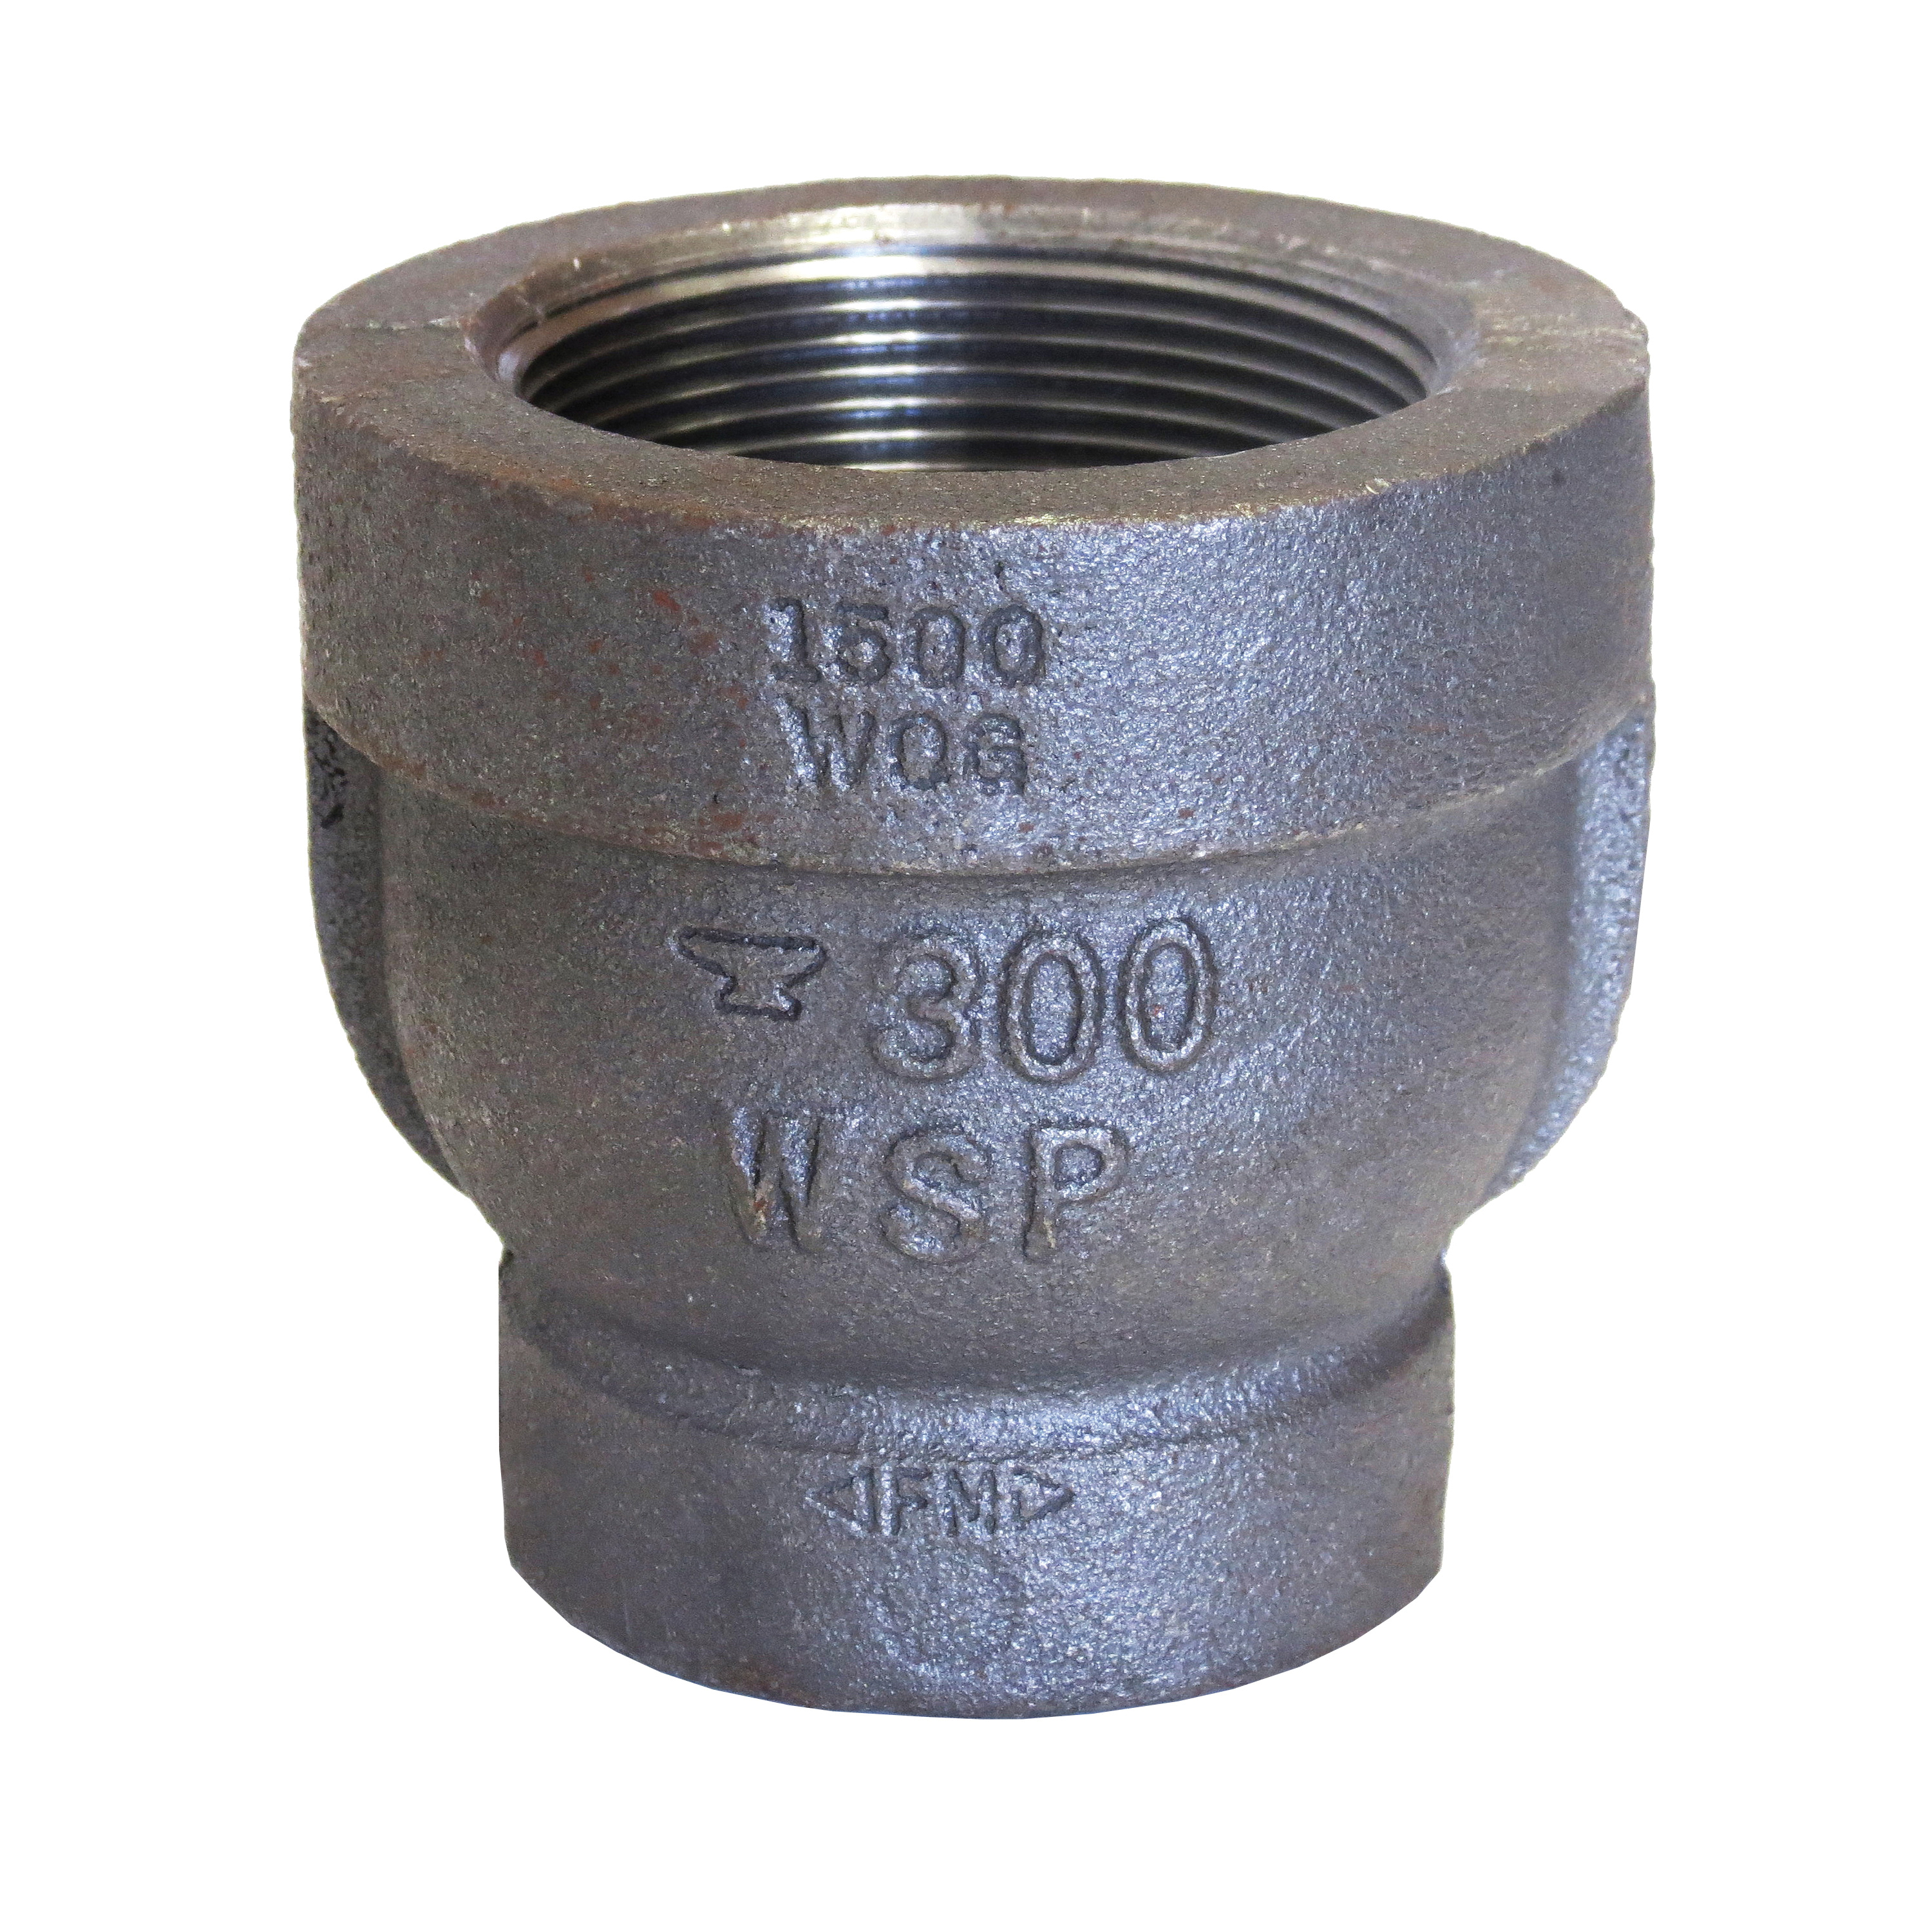 Anvil® 0311544803 FIG 1167 Pipe Reducer, 2 x 1-1/4 in, FNPT, 300 lb, Malleable Iron, Galvanized, Domestic